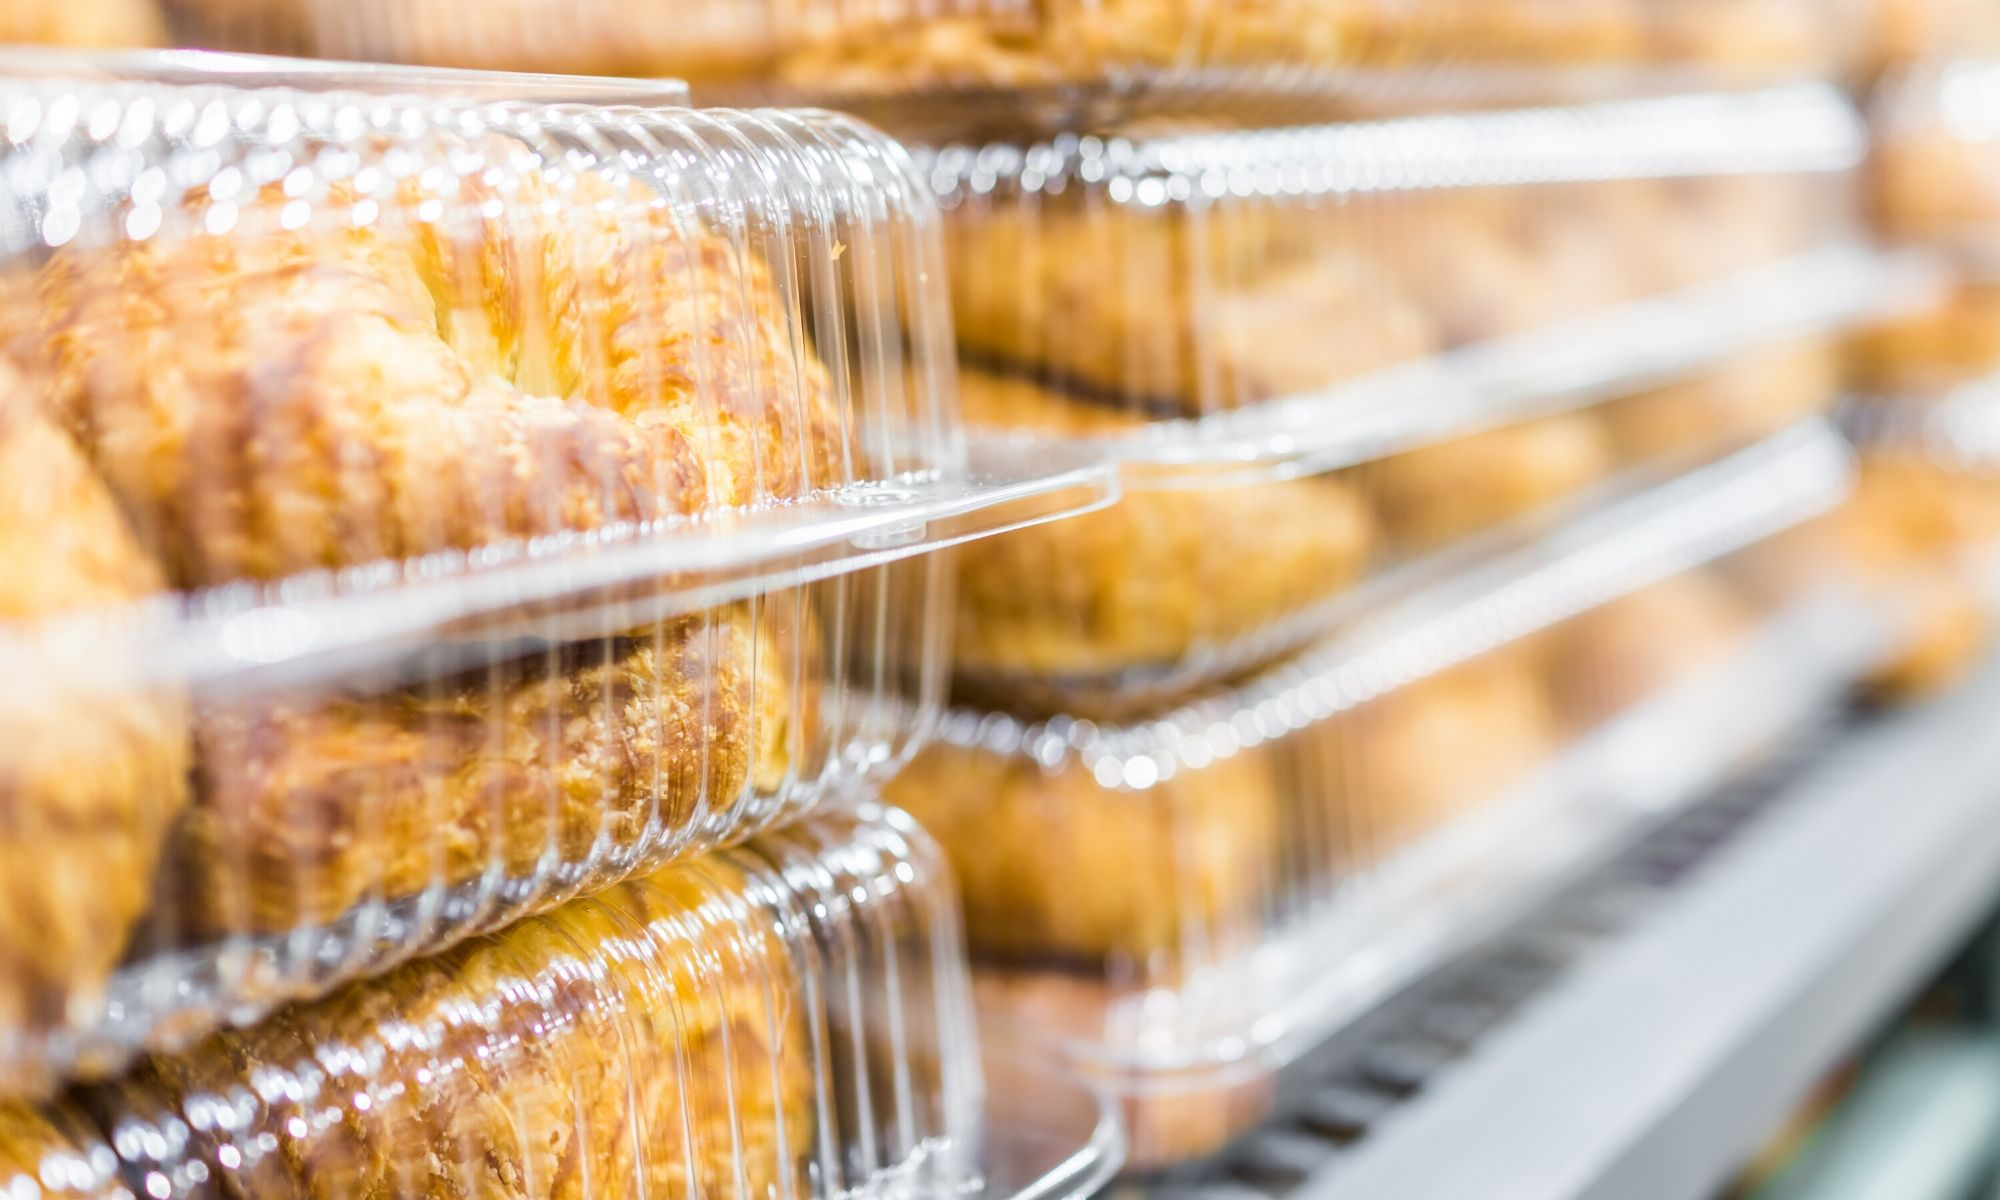 Types of Information on Bakery Labels